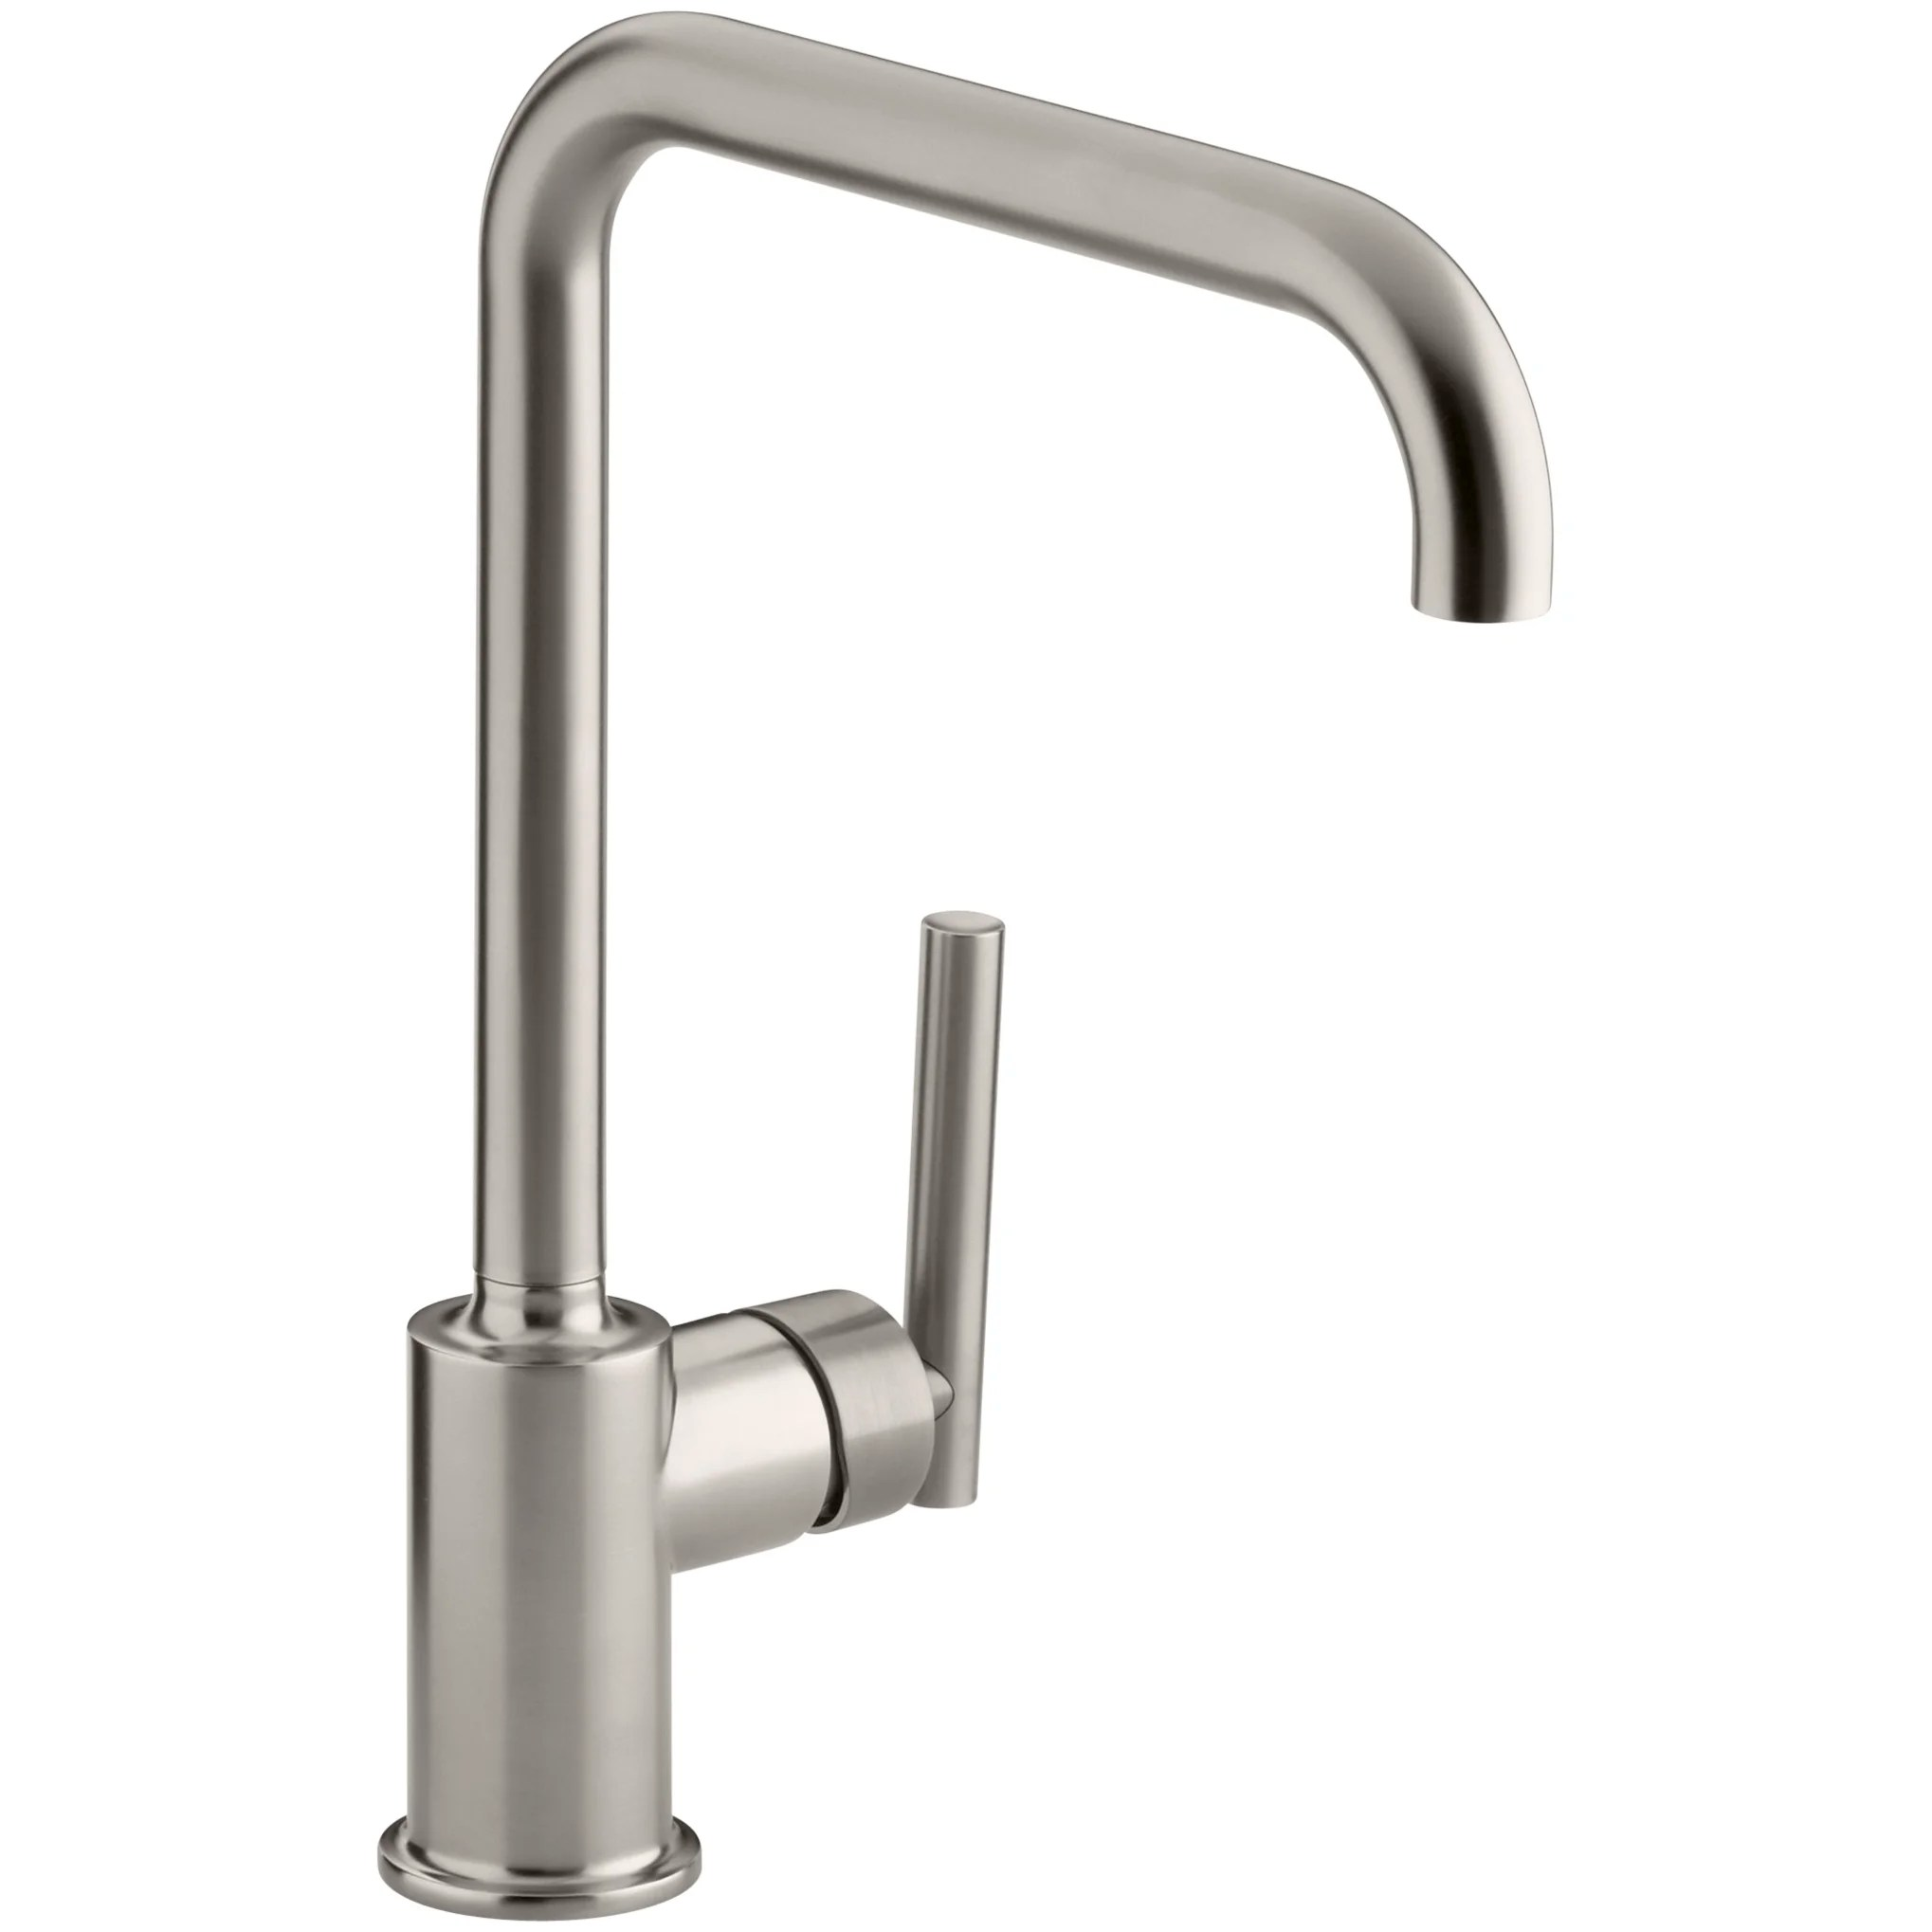 Kohler Purist SingleHole Kitchen Sink Faucet with 8